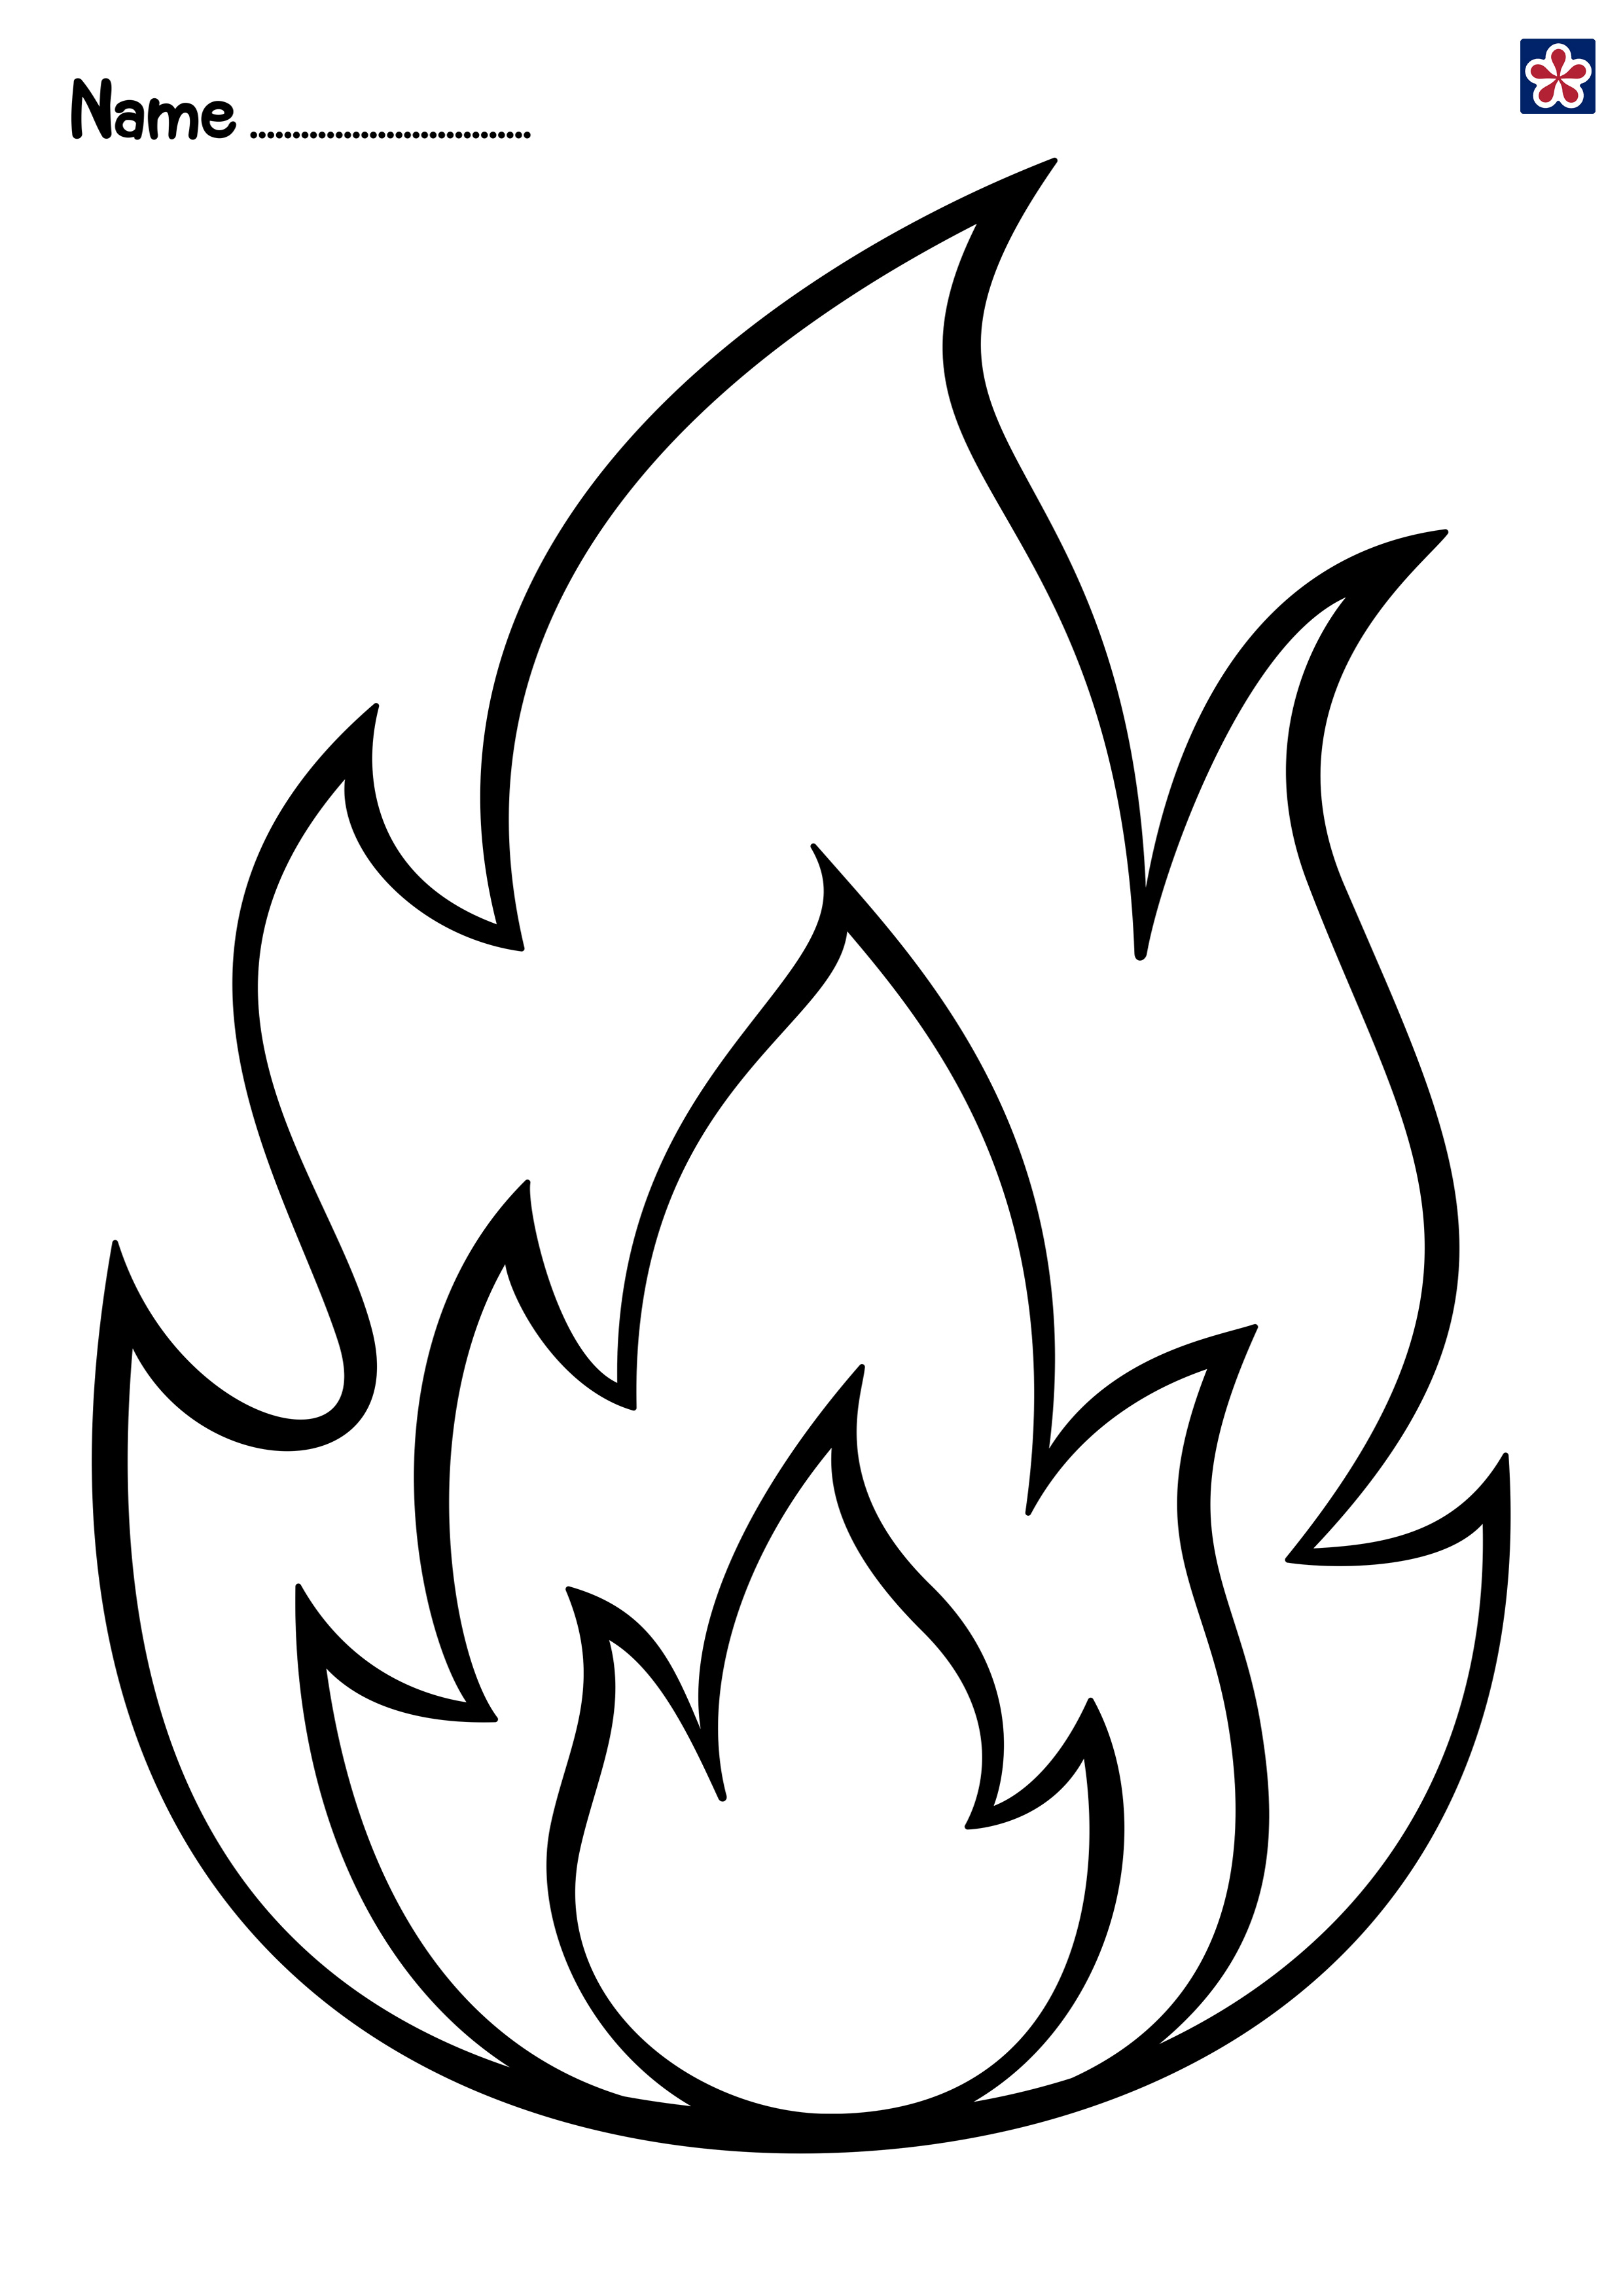 coloring free fire fire flames coloring pages at getdrawings free download fire coloring free